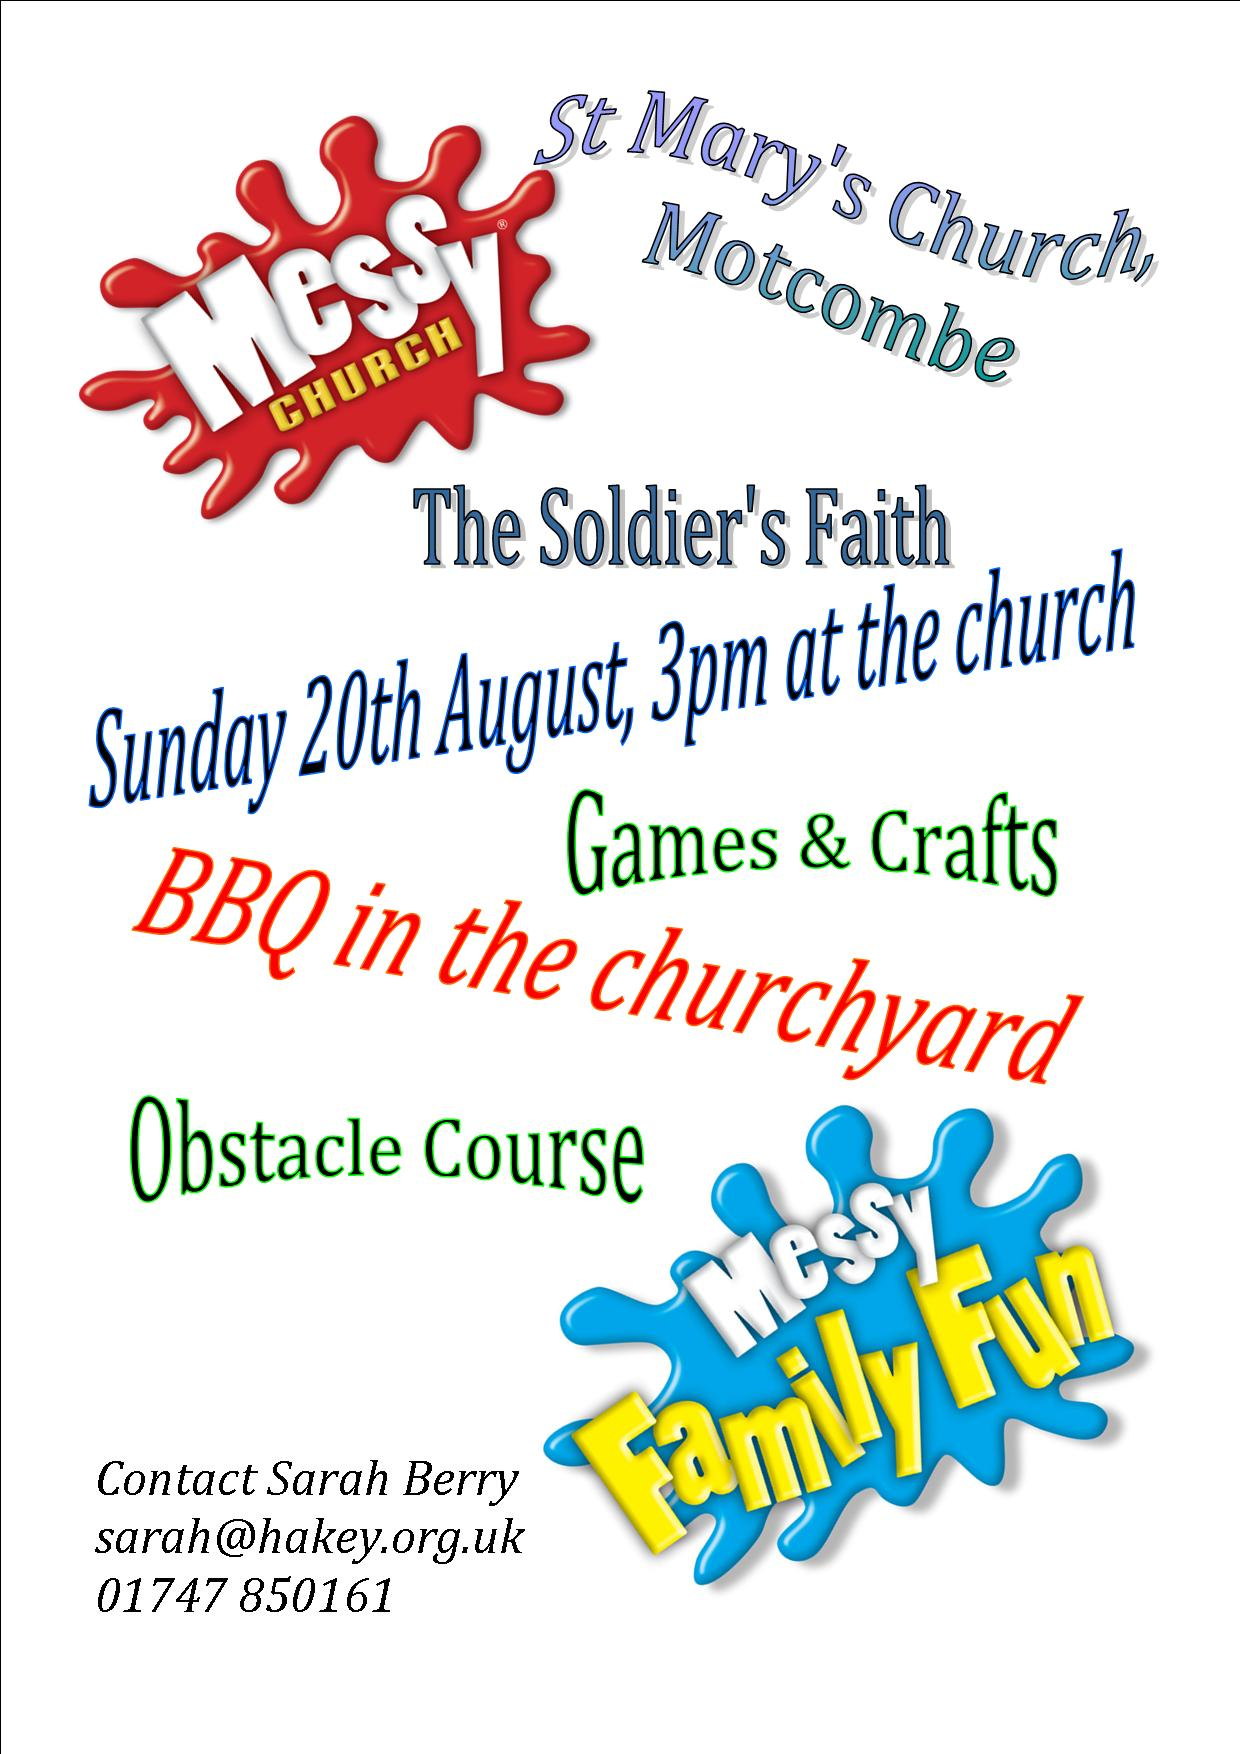 Messy Church at Motcombe!